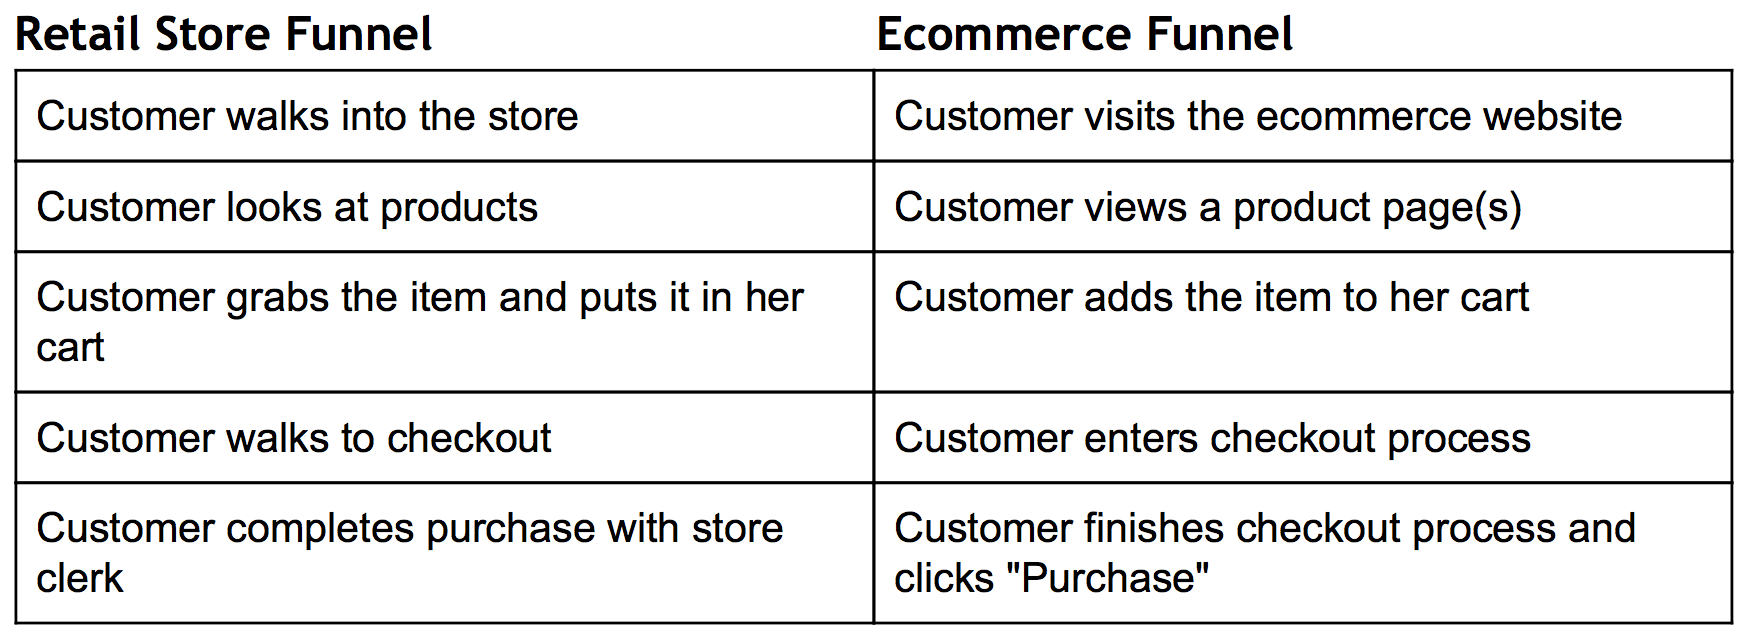 funnel-report-comparison-retail-store-ecommerce